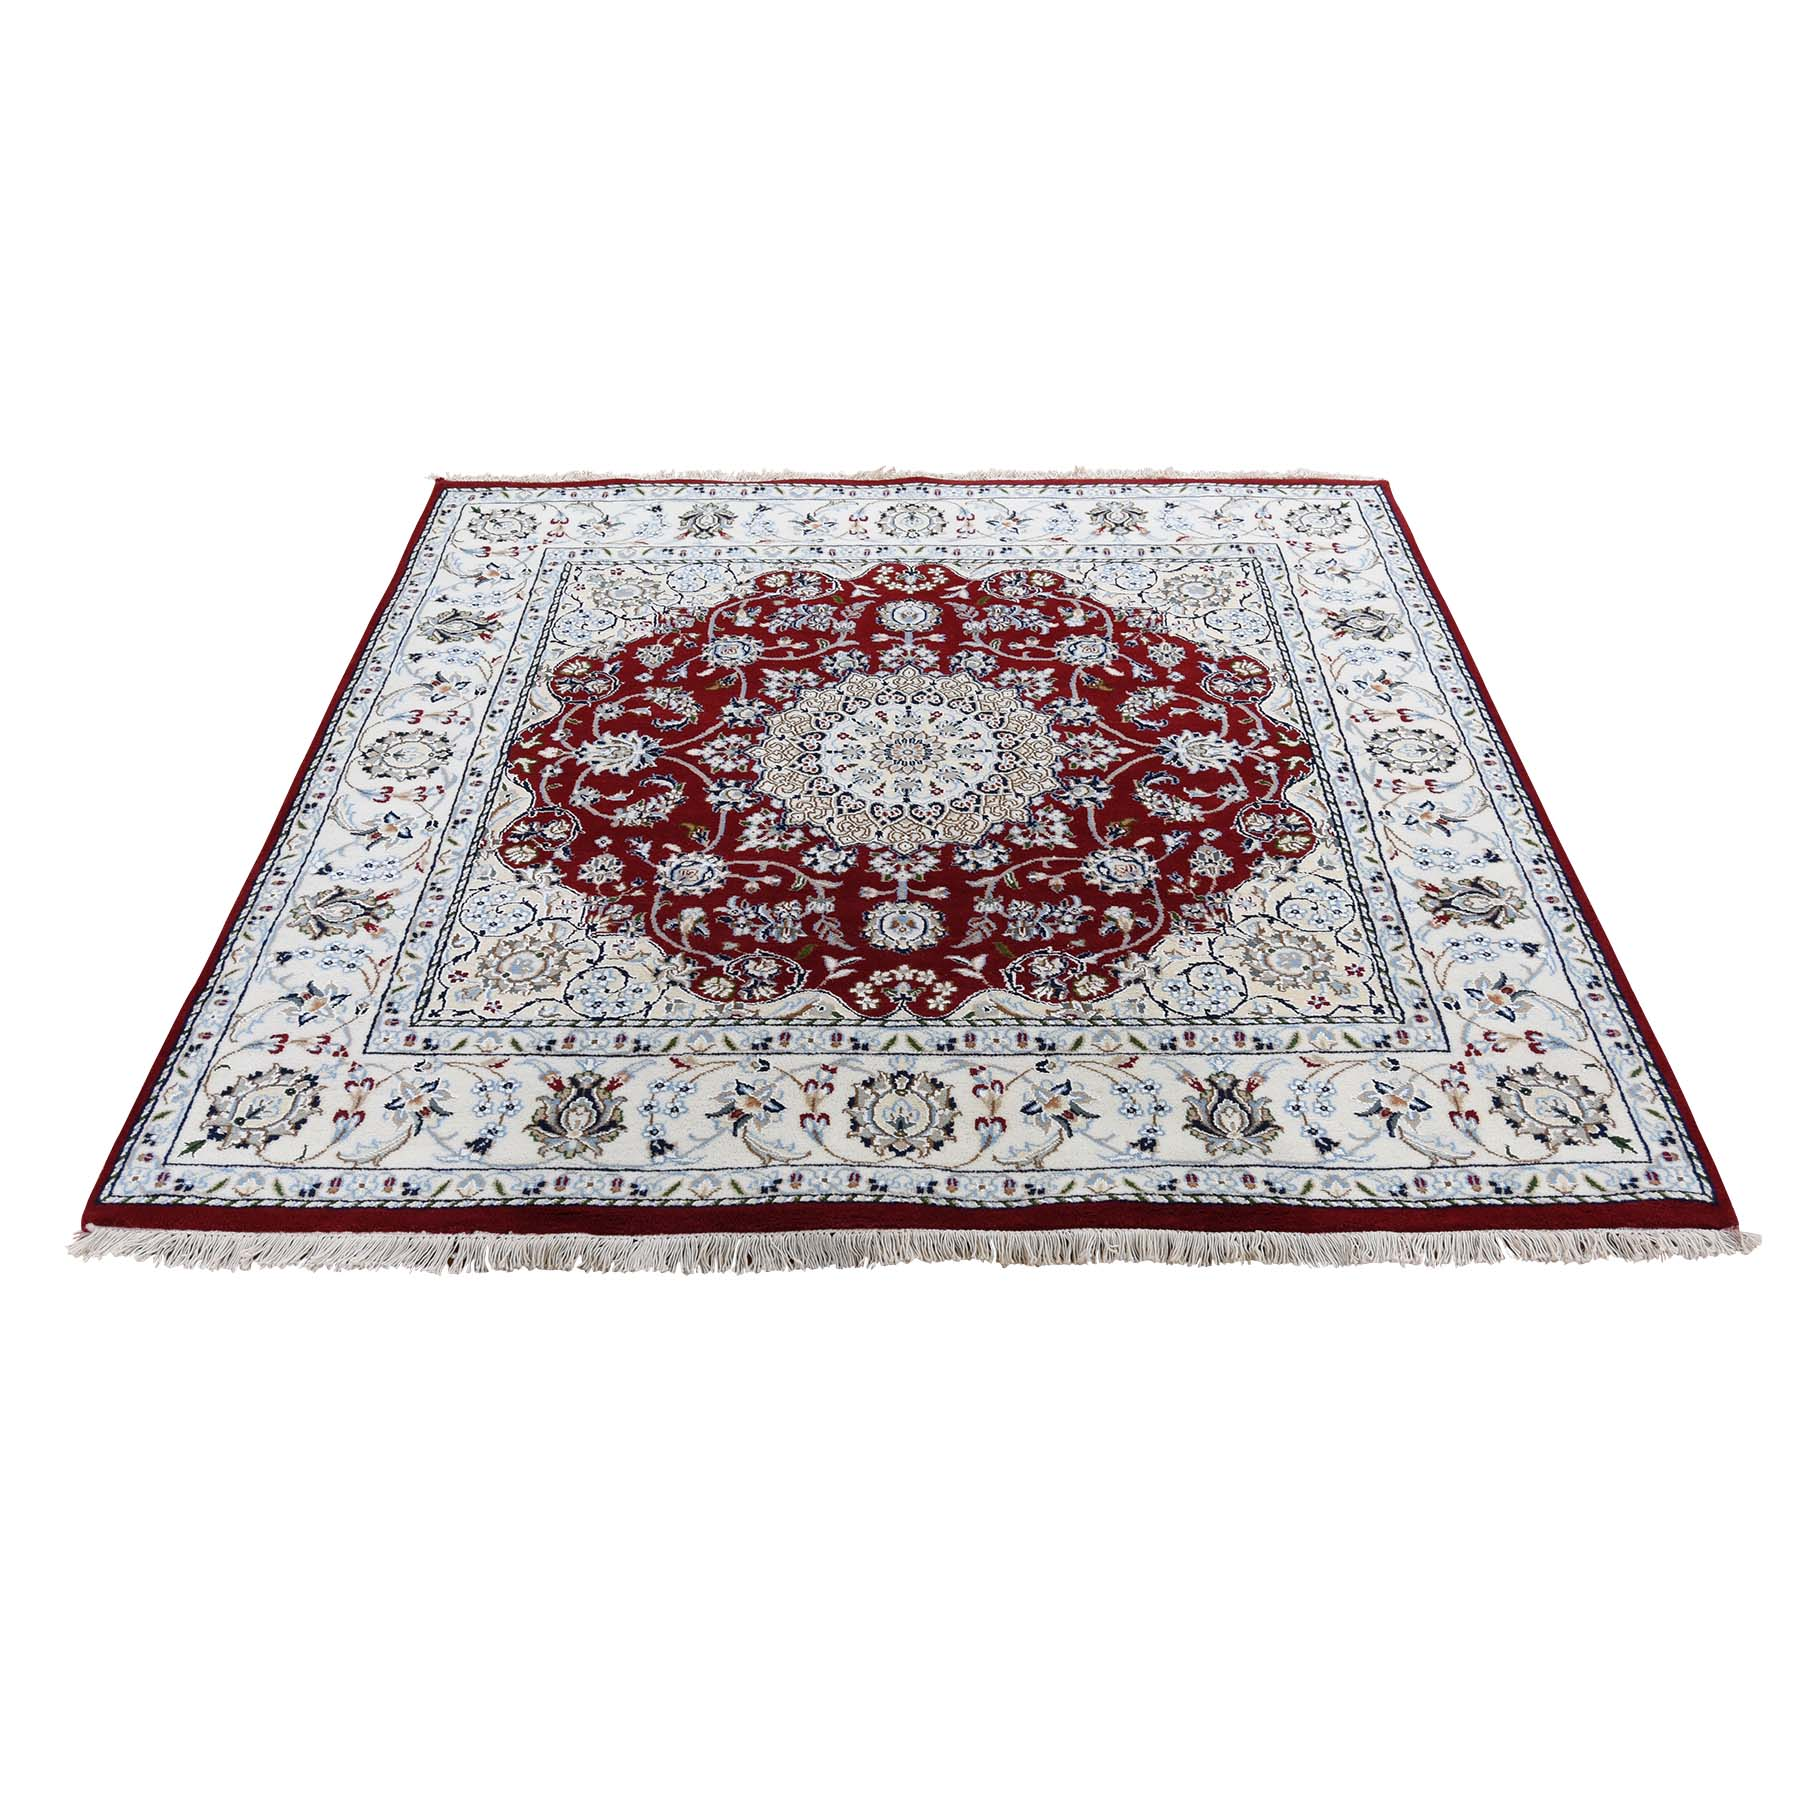 5'X5' Square Wool And Silk 250 Kpsi Red Nain Hand-Knotted Oriental Rug moad6c68